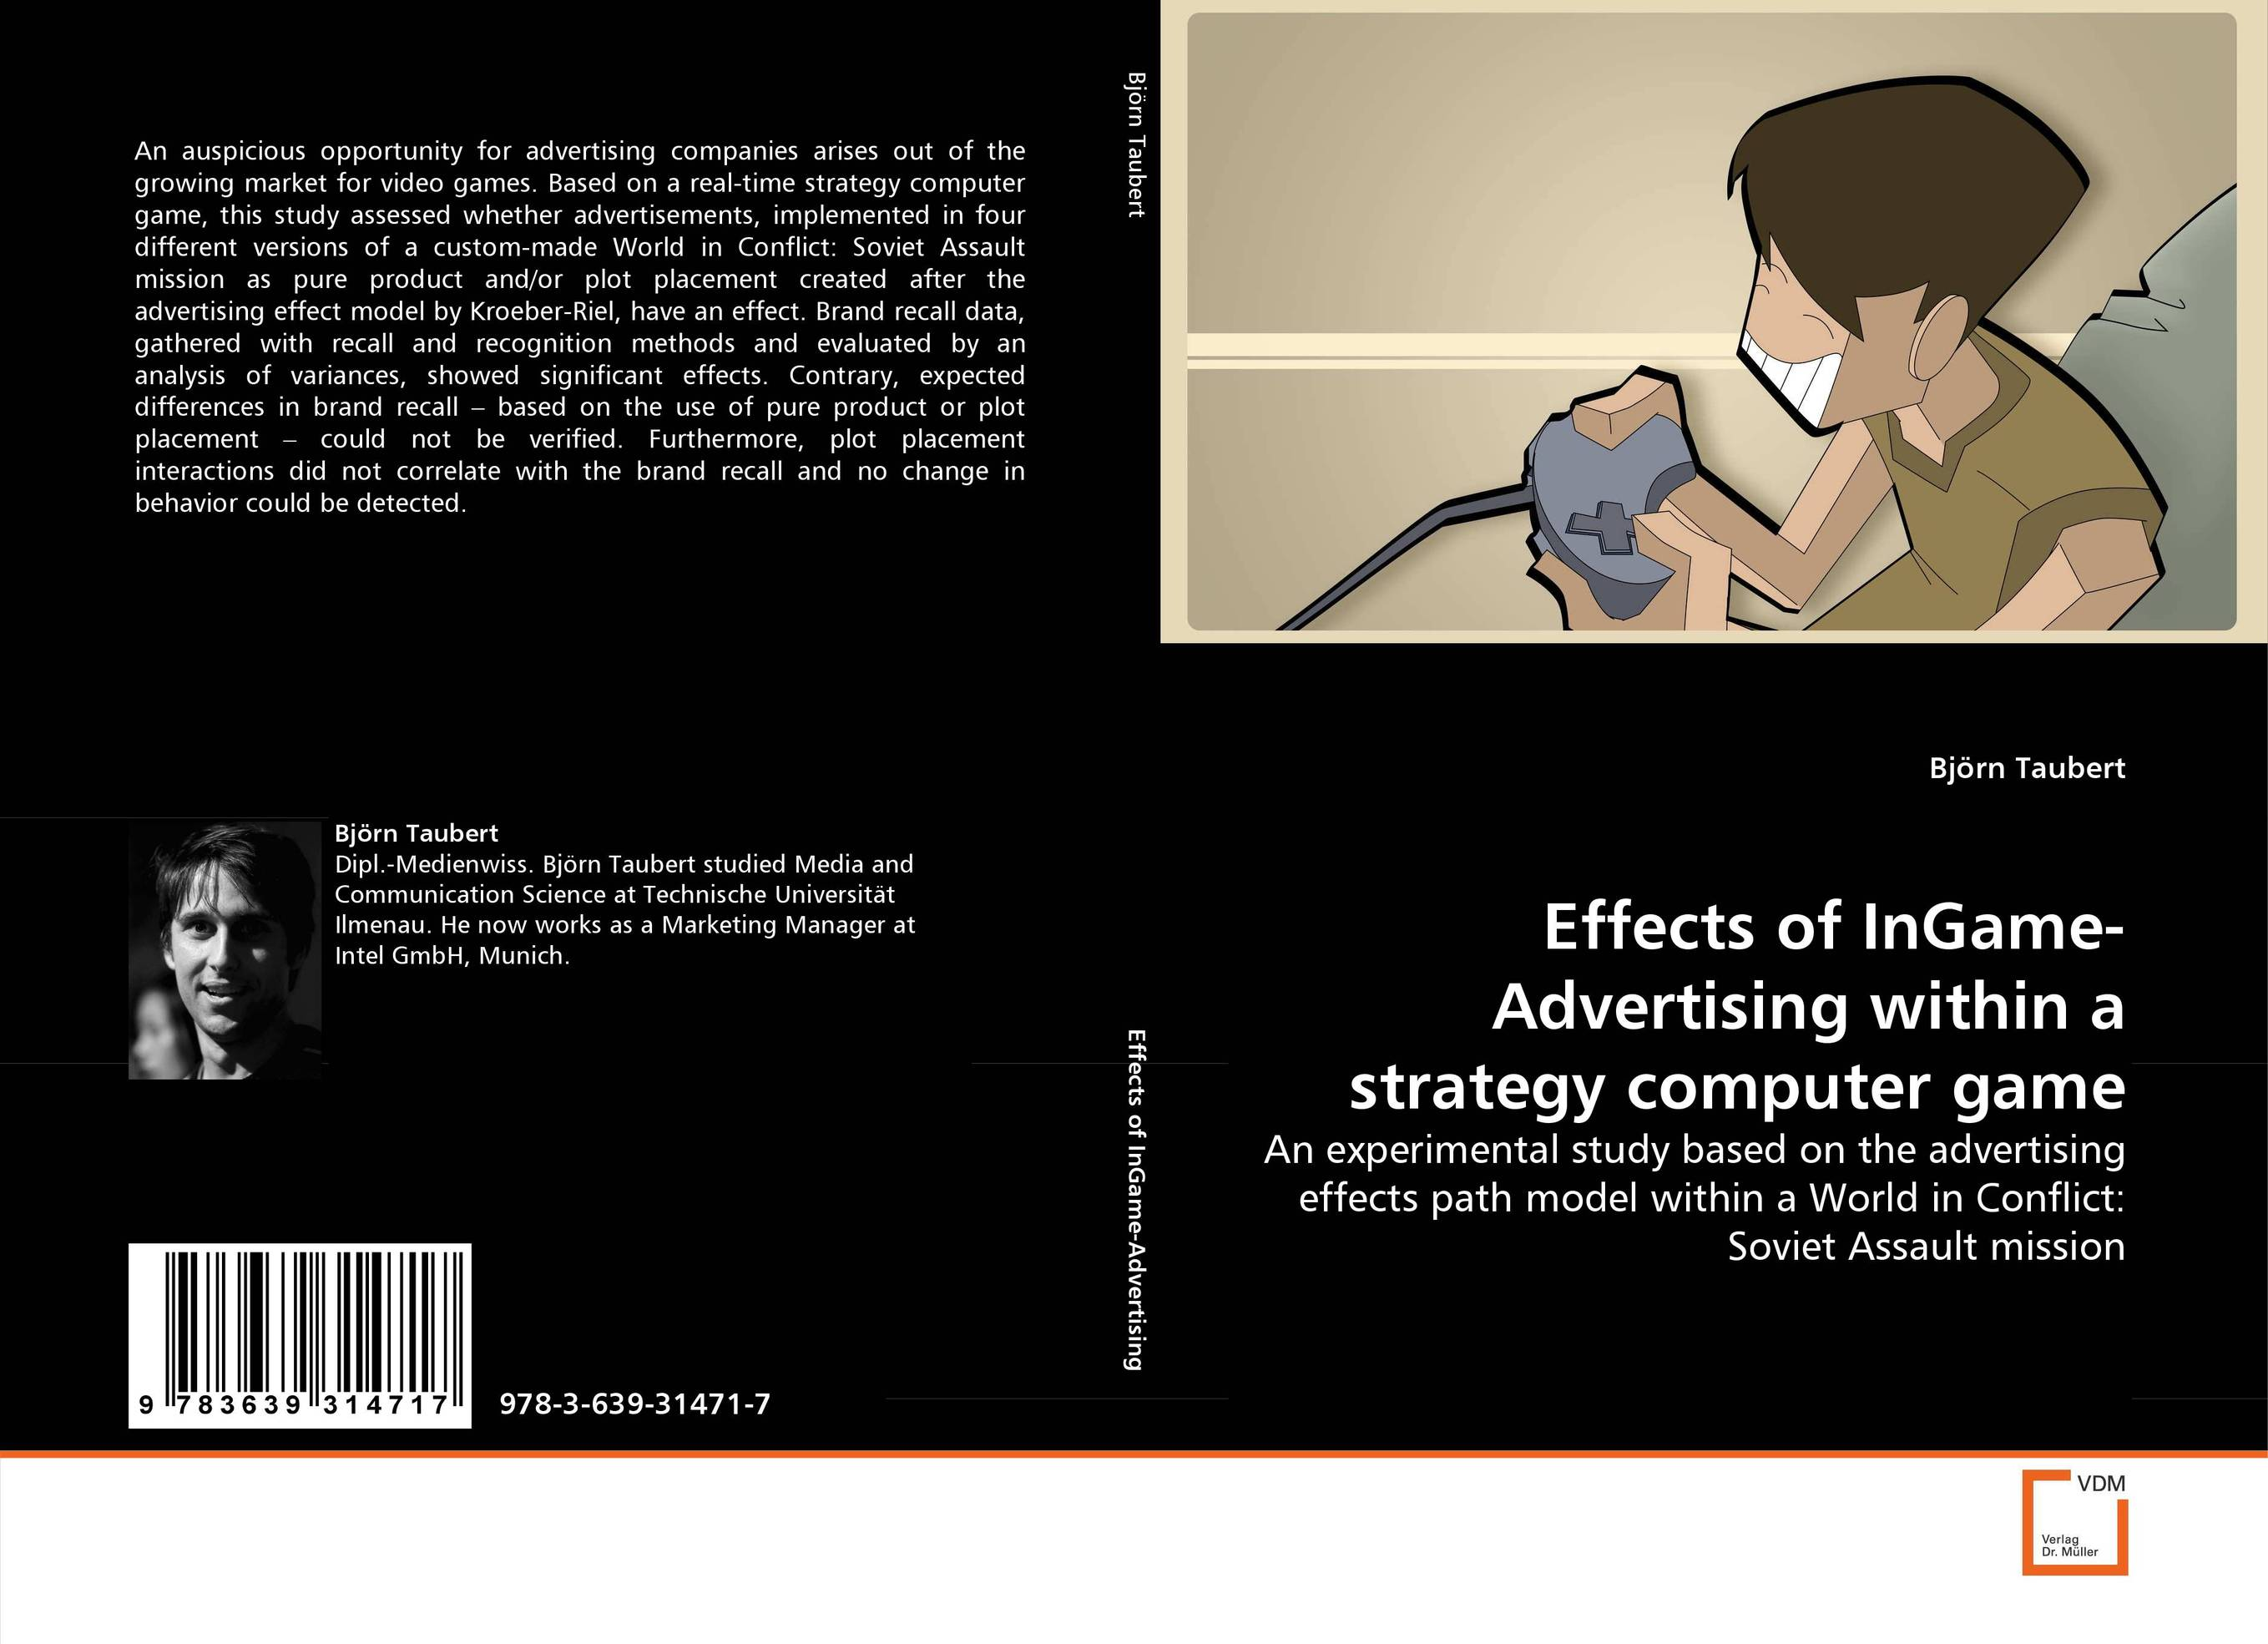 Effects of InGame-Advertising within a strategy computer game oksana zhuk advertising consumption and welfare effects of advertising